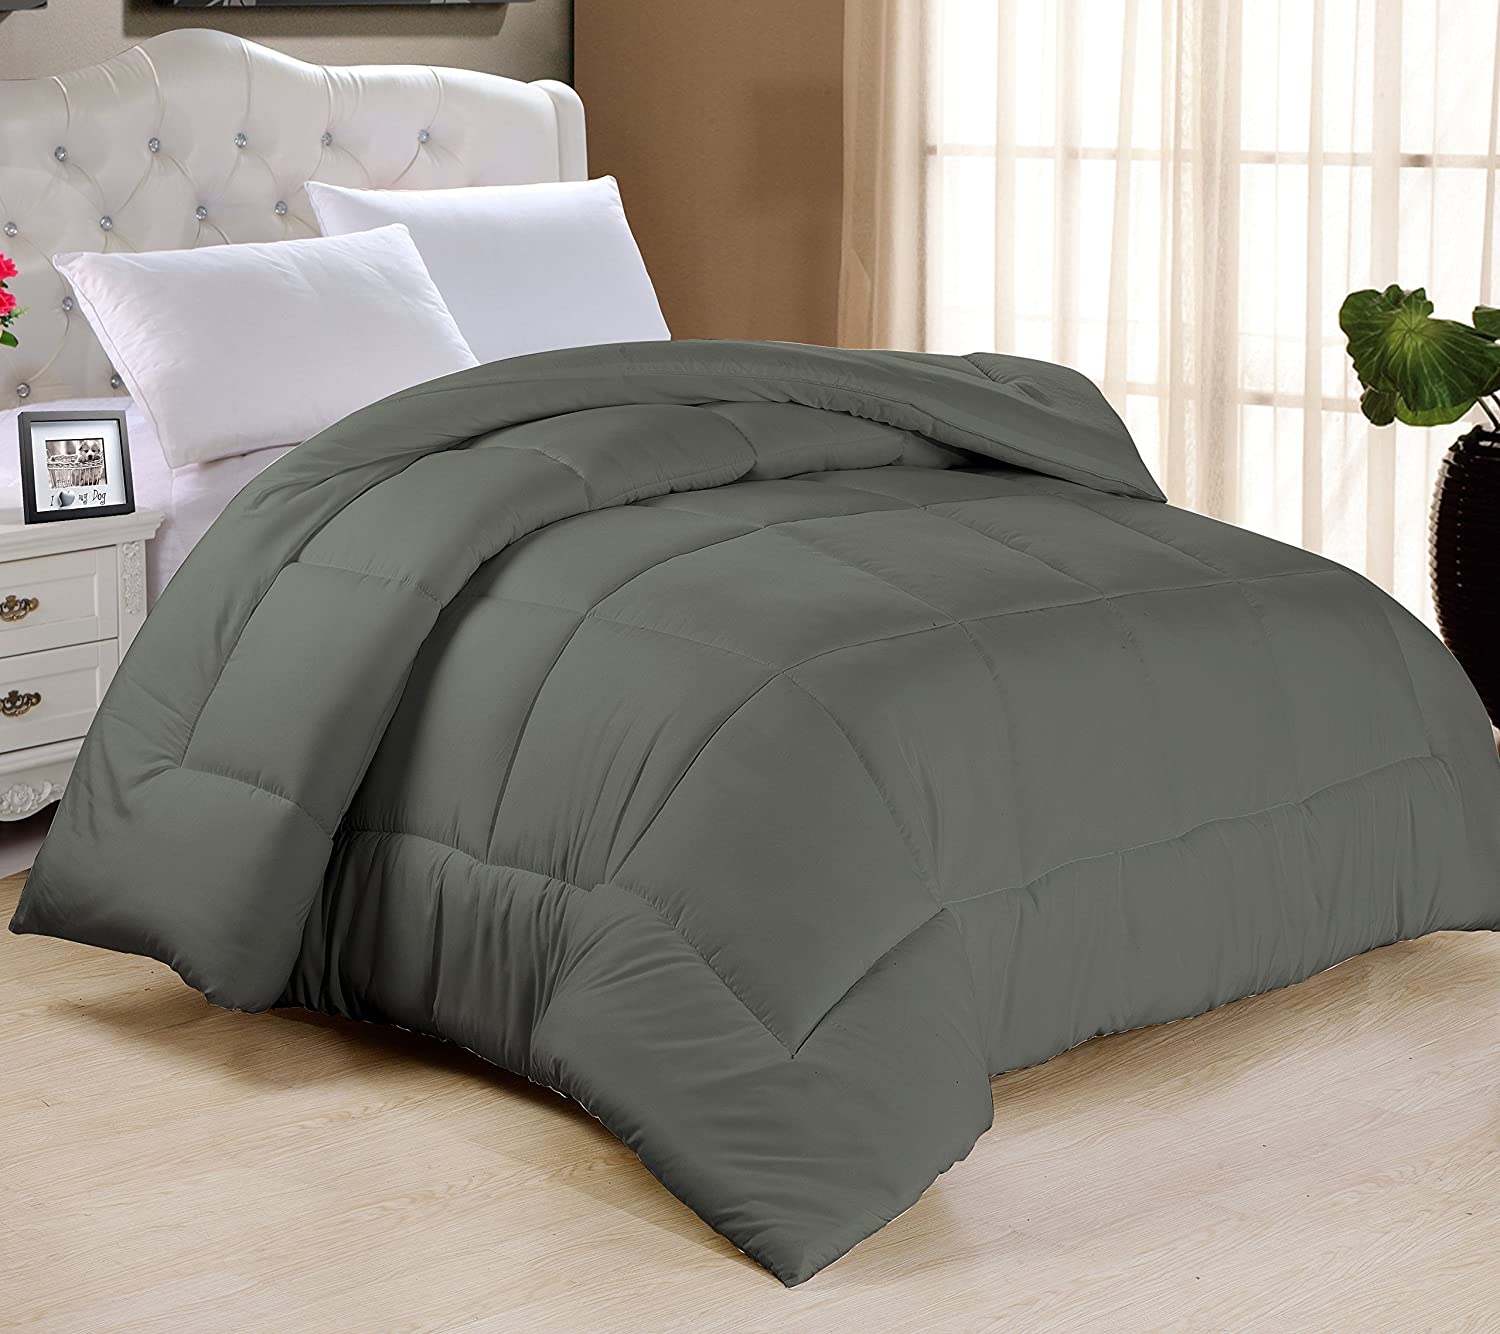 """Swift Home All-Season Extra Soft Luxurious Classic Light-Warmth Goose Down-Alternative Comforter, King 104"""" x 90"""", Grey"""